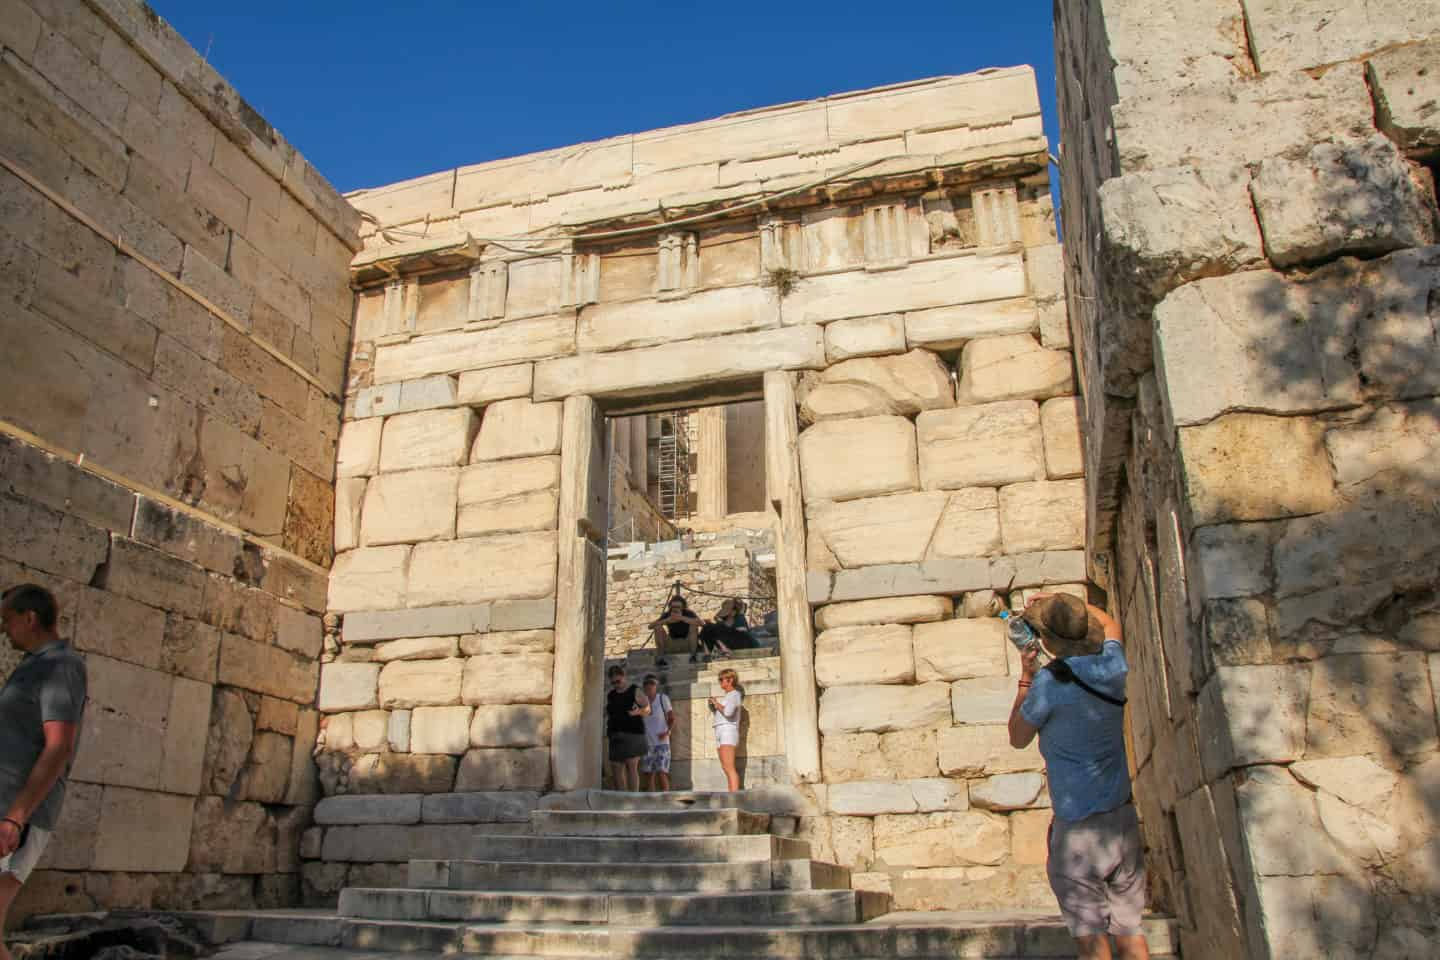 Walking through the Entrance Gate to the Acropolis is vital!